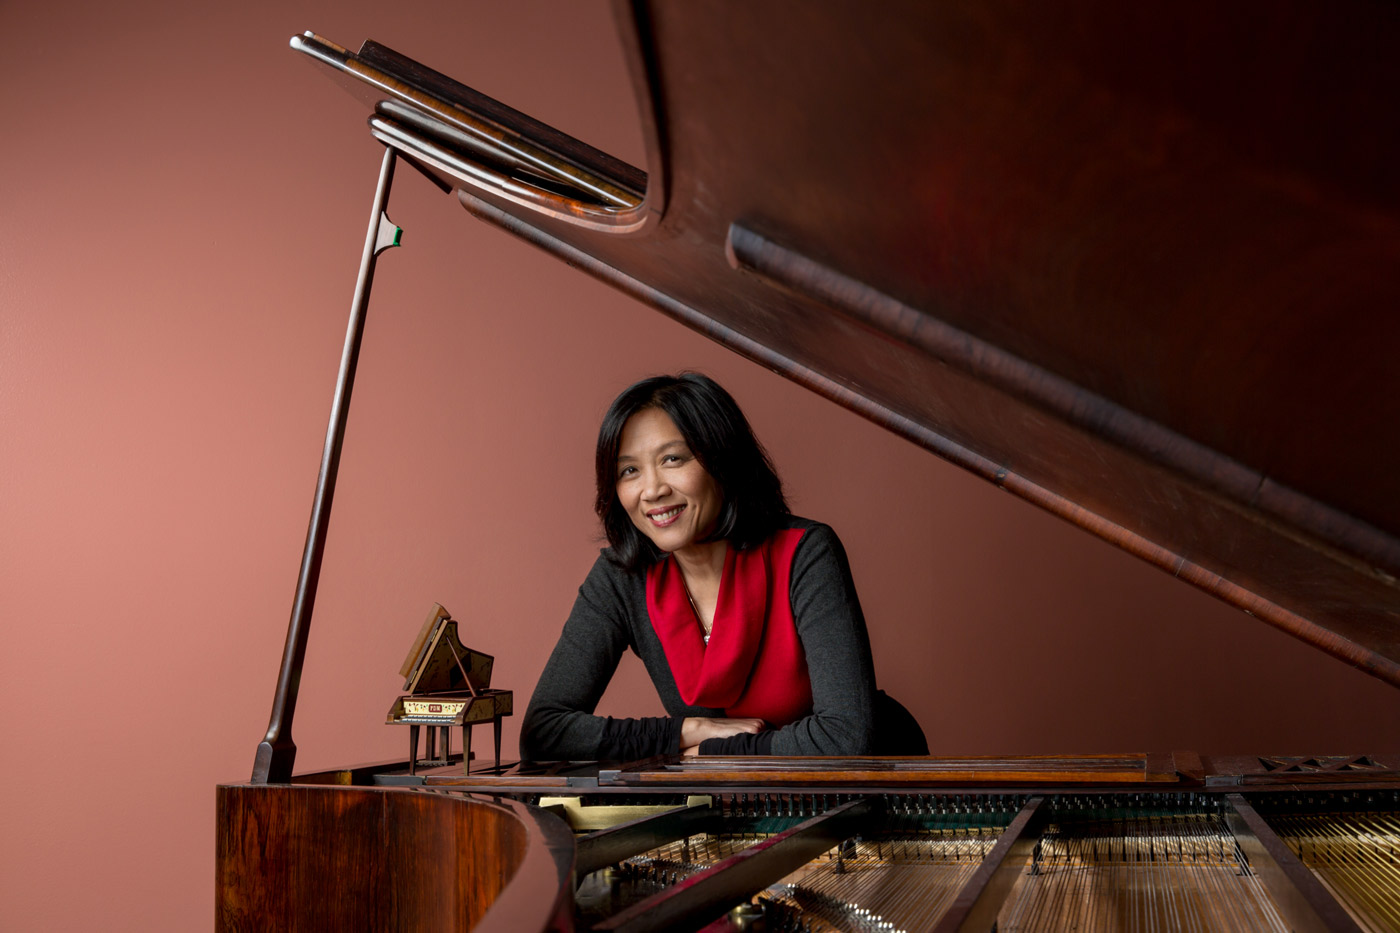 Gwendolyn Mok posing with a piano.